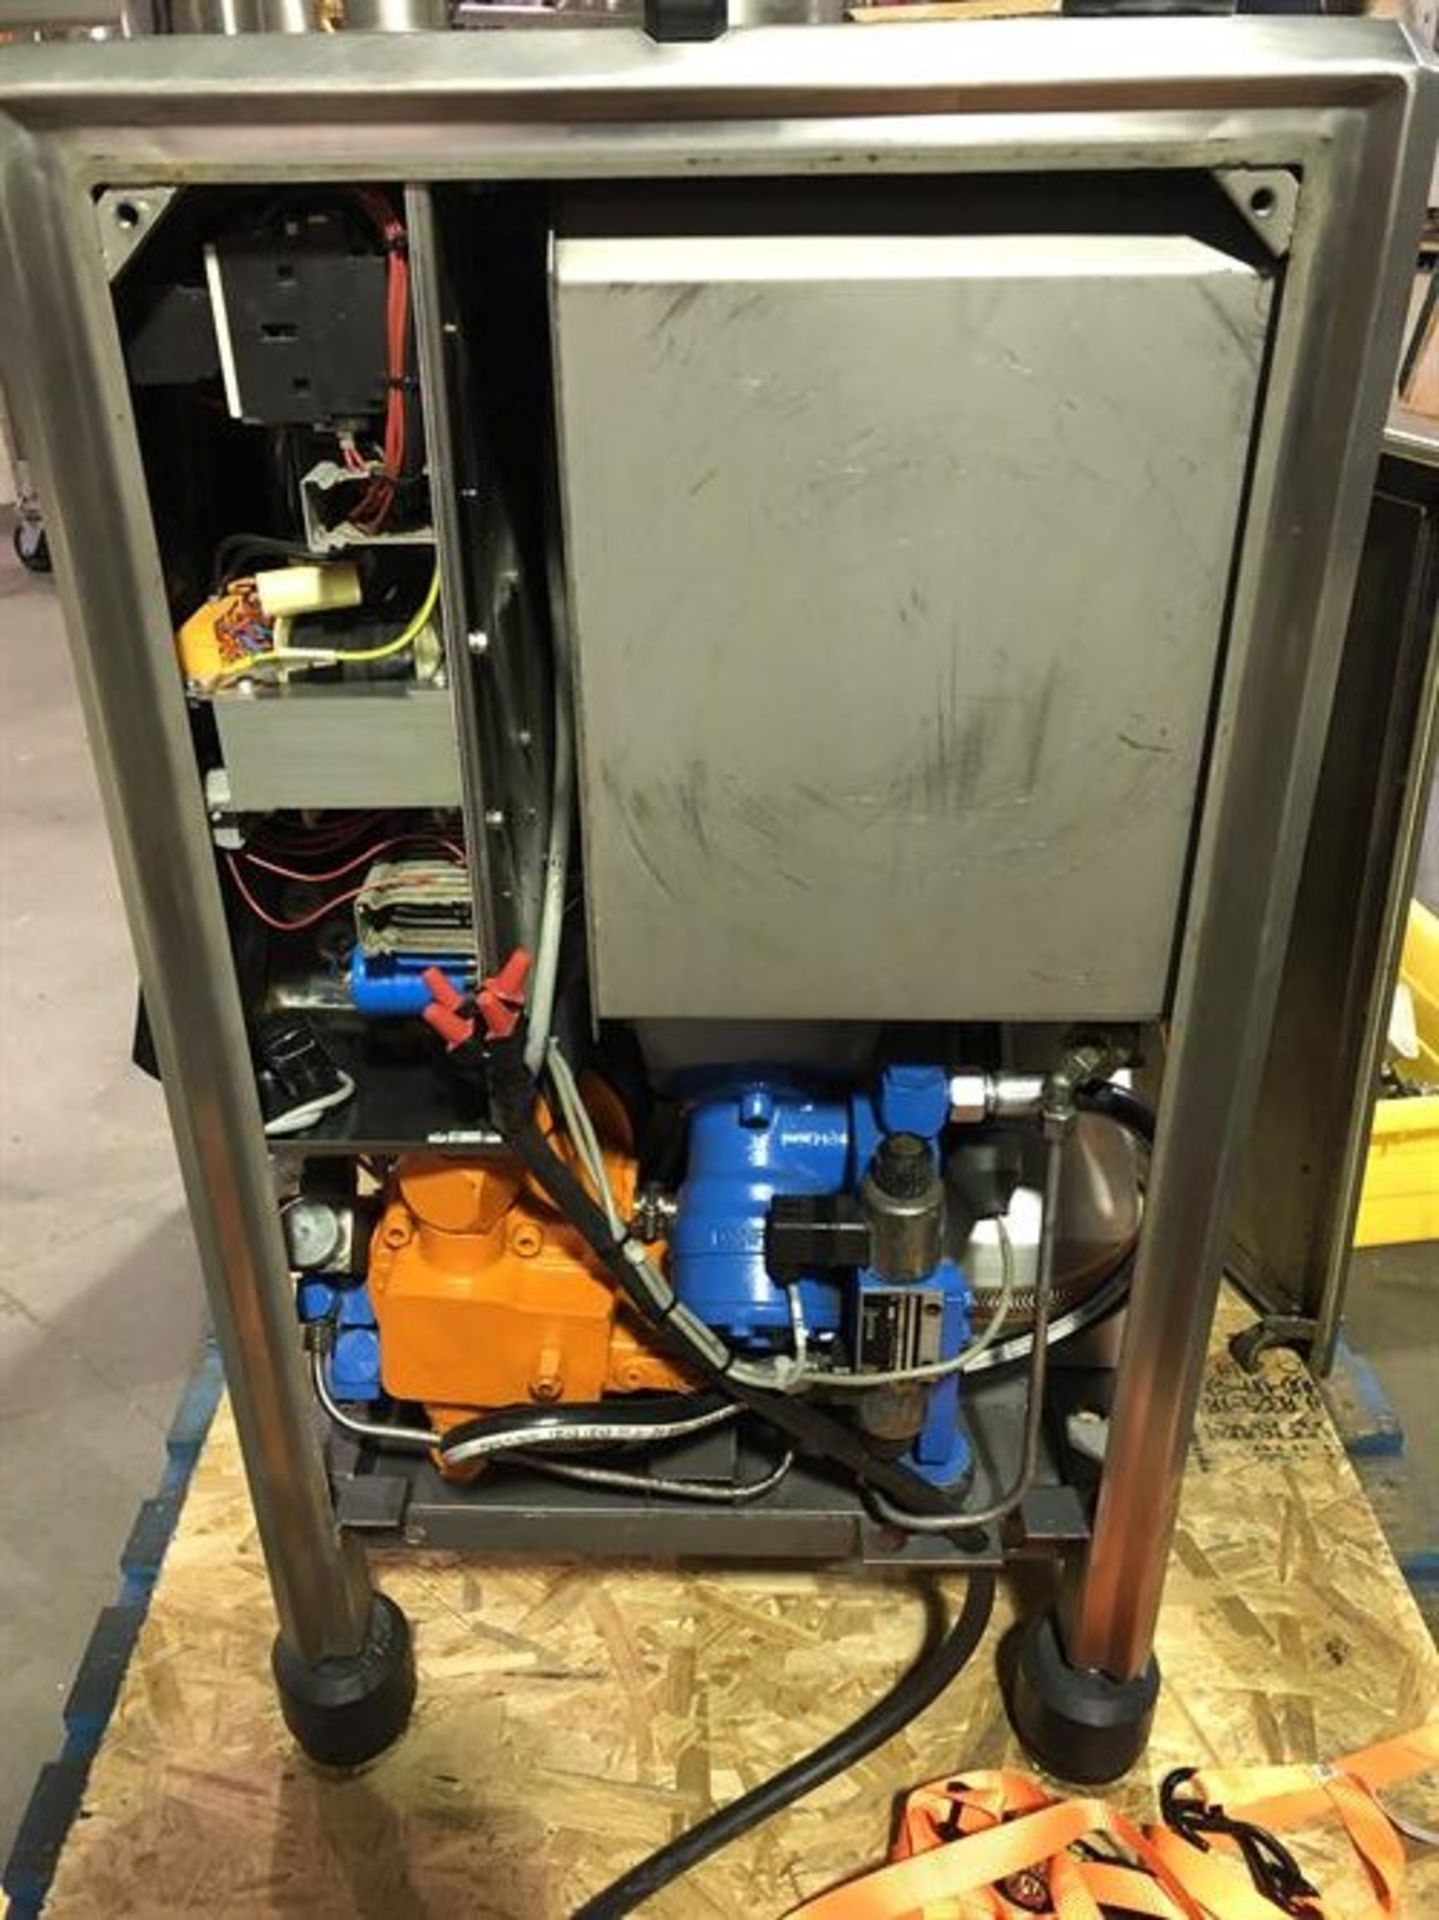 Vemag Robot 500 Stainless Steel Vacuum Stuffer - Machine has been completely reconditioned - PC - Image 27 of 31